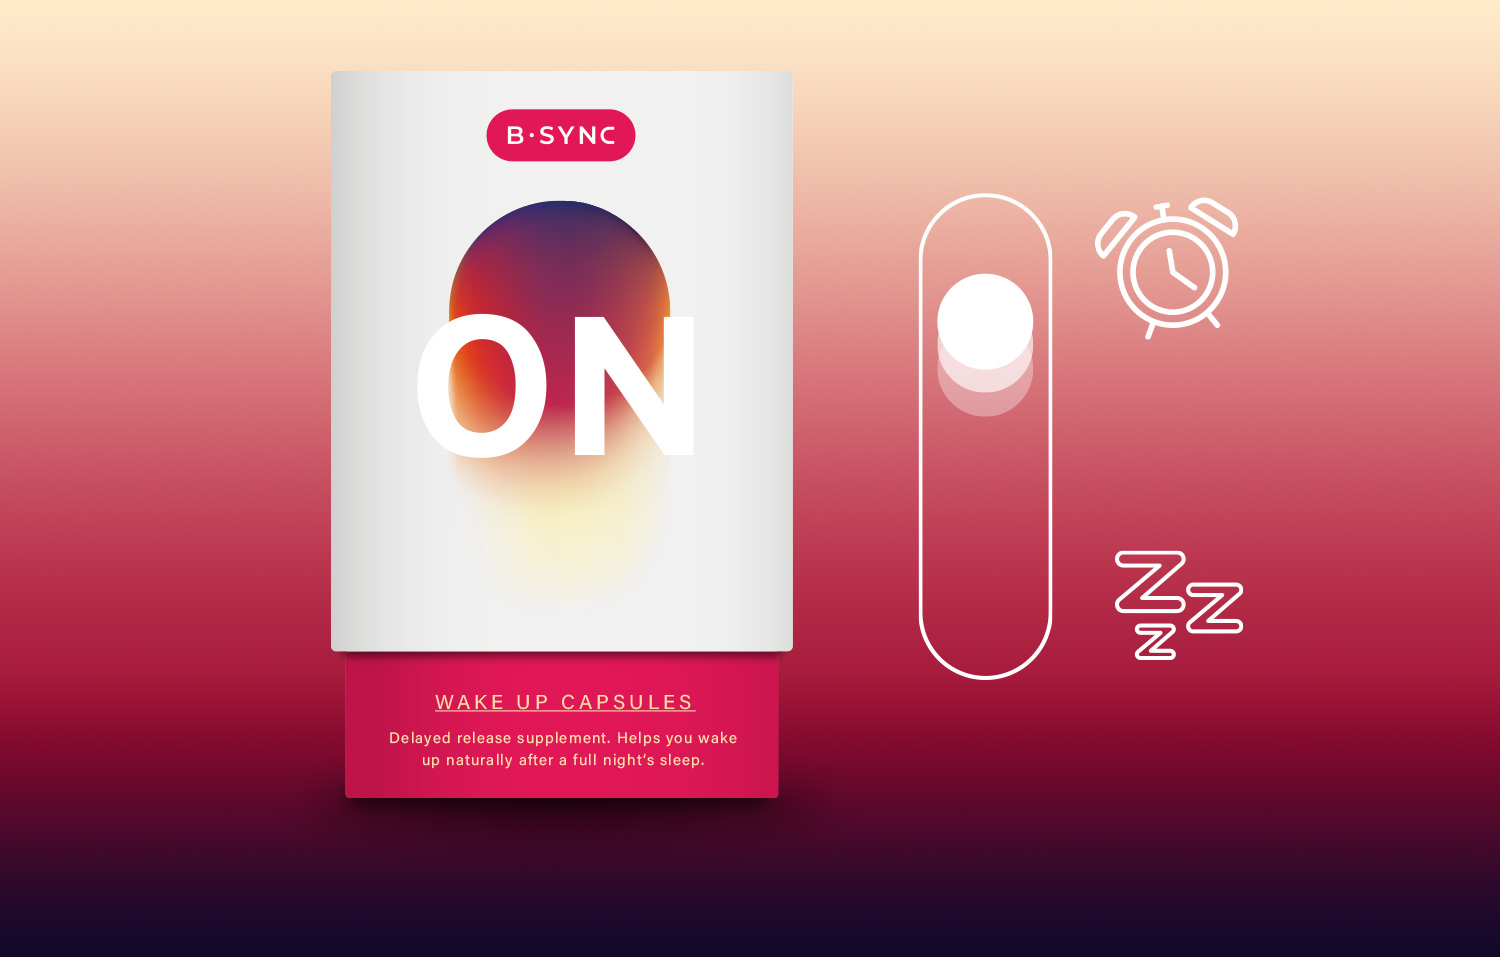 Our first nutraceutical product is for those who seek to control their inner clock and wake up with ease. Unlike other sleep-aids or your alarm clock, it empowers night owls, shift workers and business travelers to control their wake-up process.